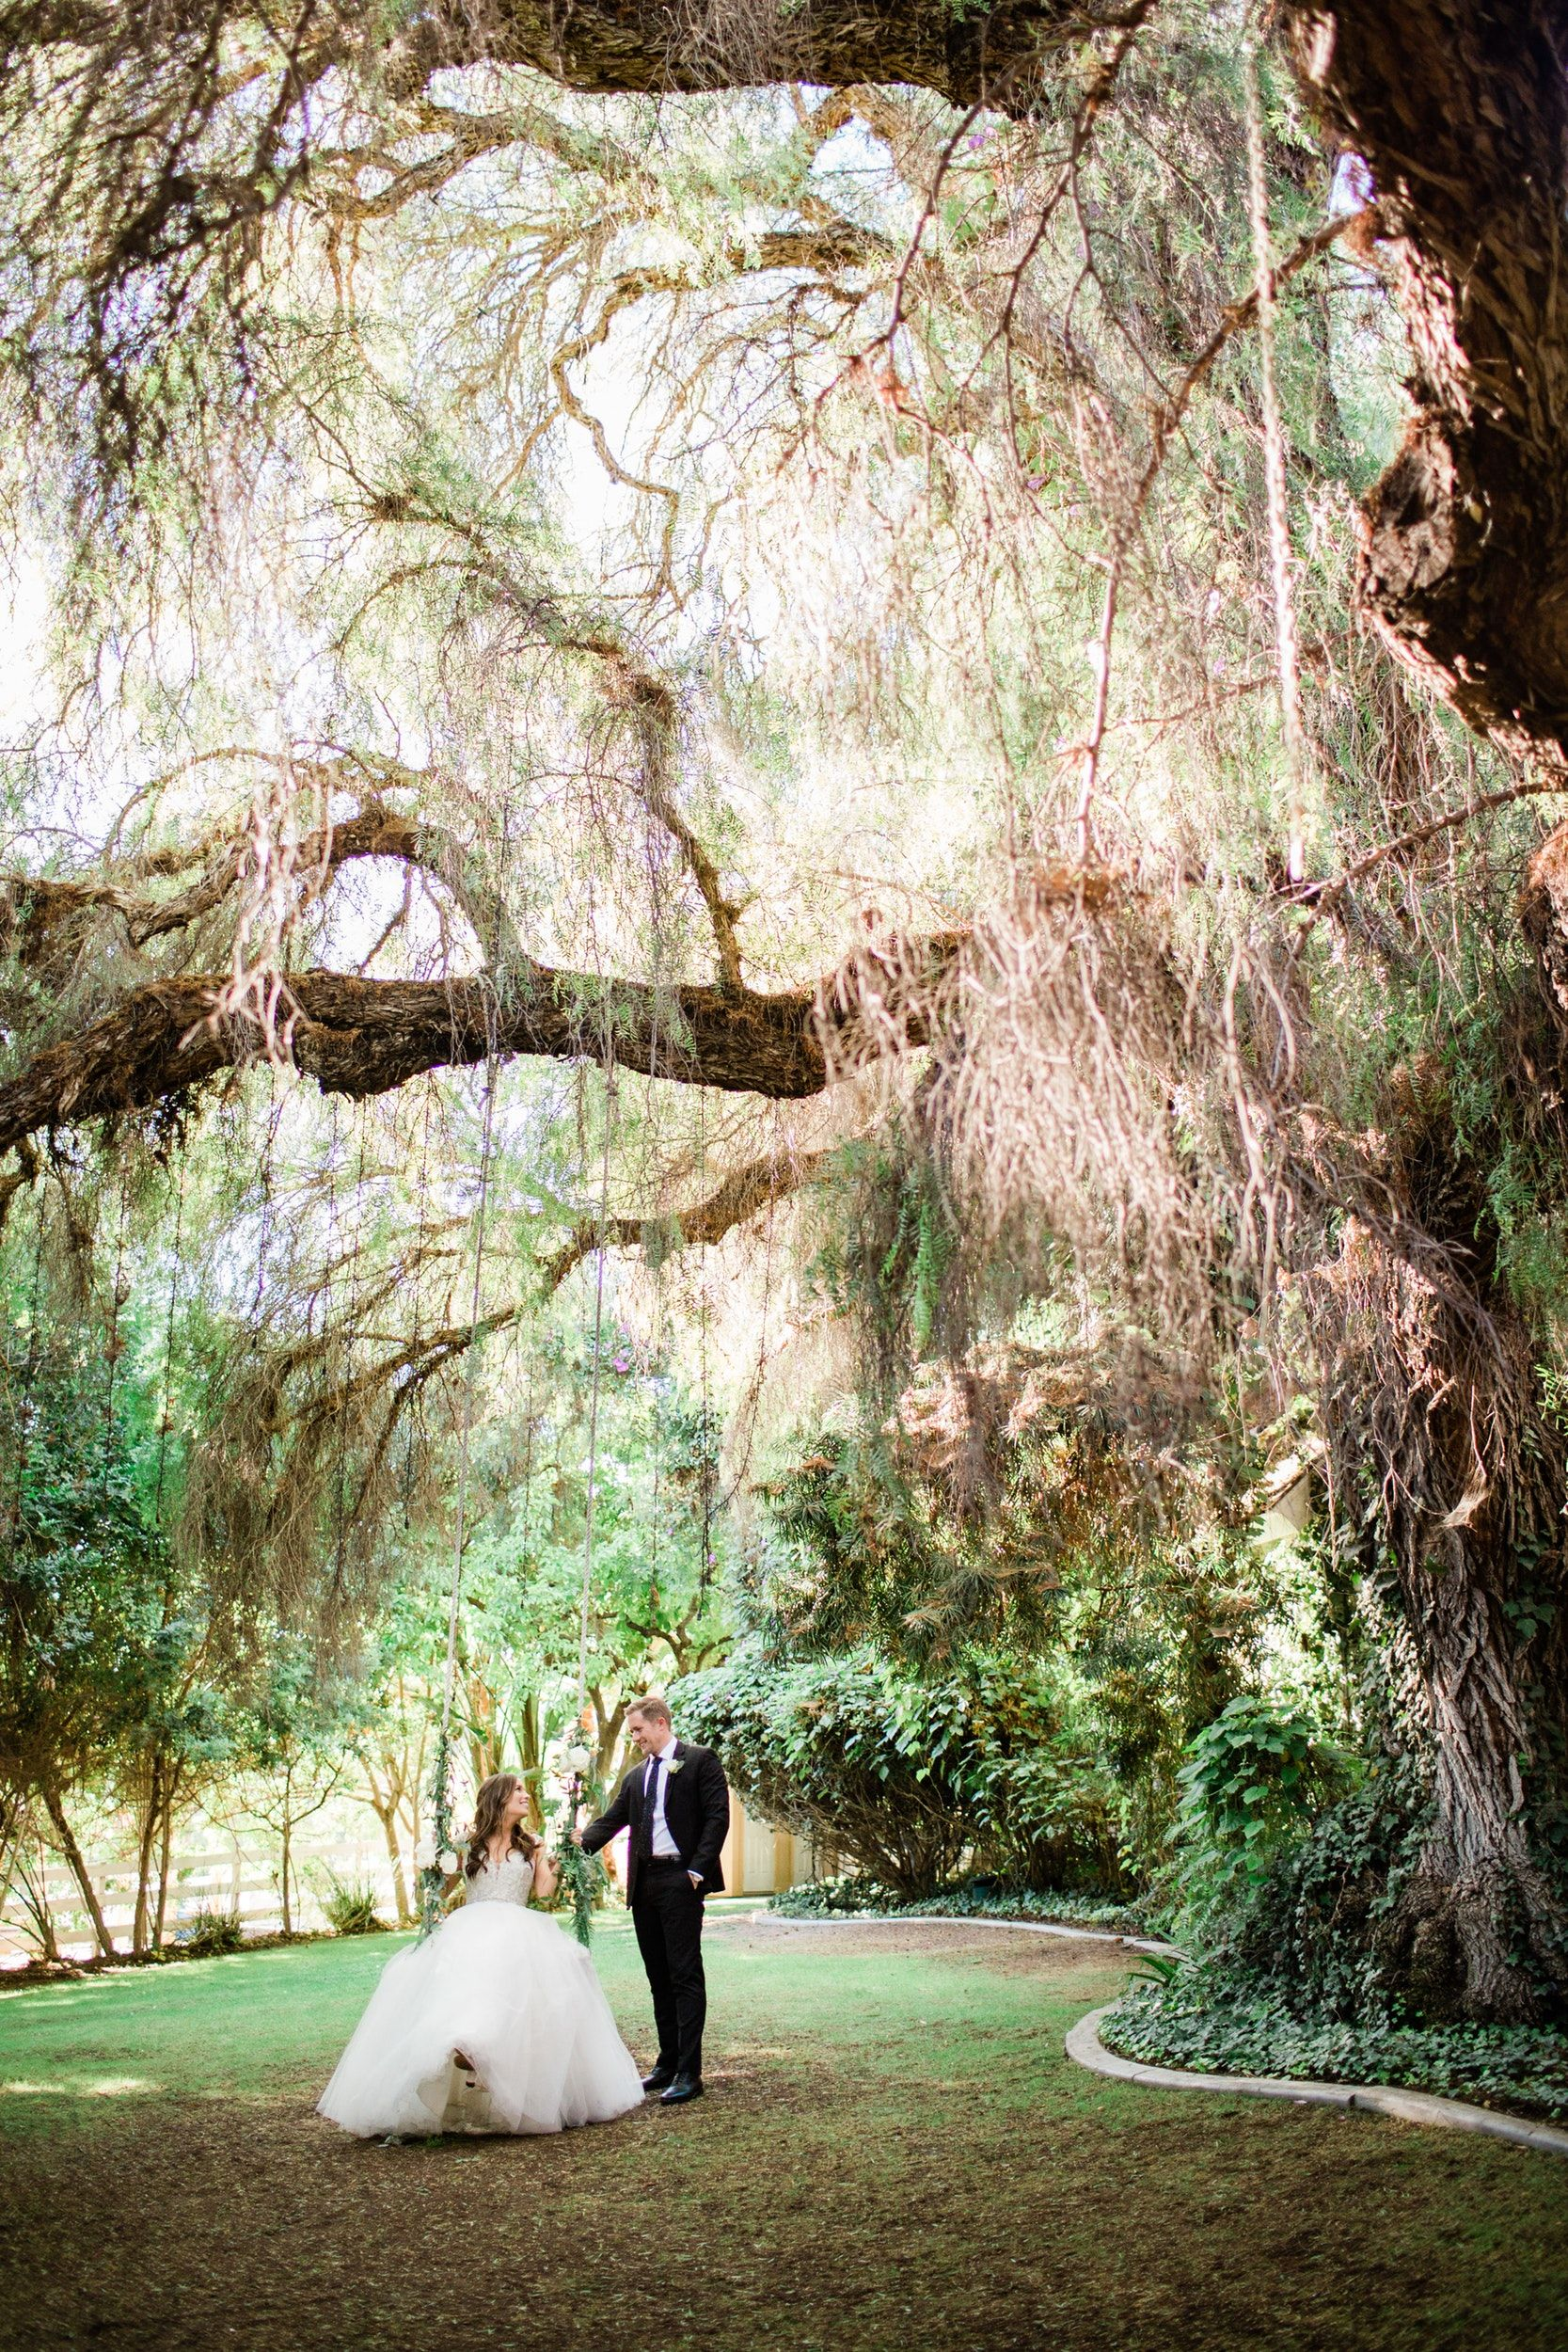 A Massive 200 Year Old Pepper Tree Dwarfs This Newlywed Couple On The Wooden Swing In 2020 Green Gables Wedding Estate Green Gables Garden Venue